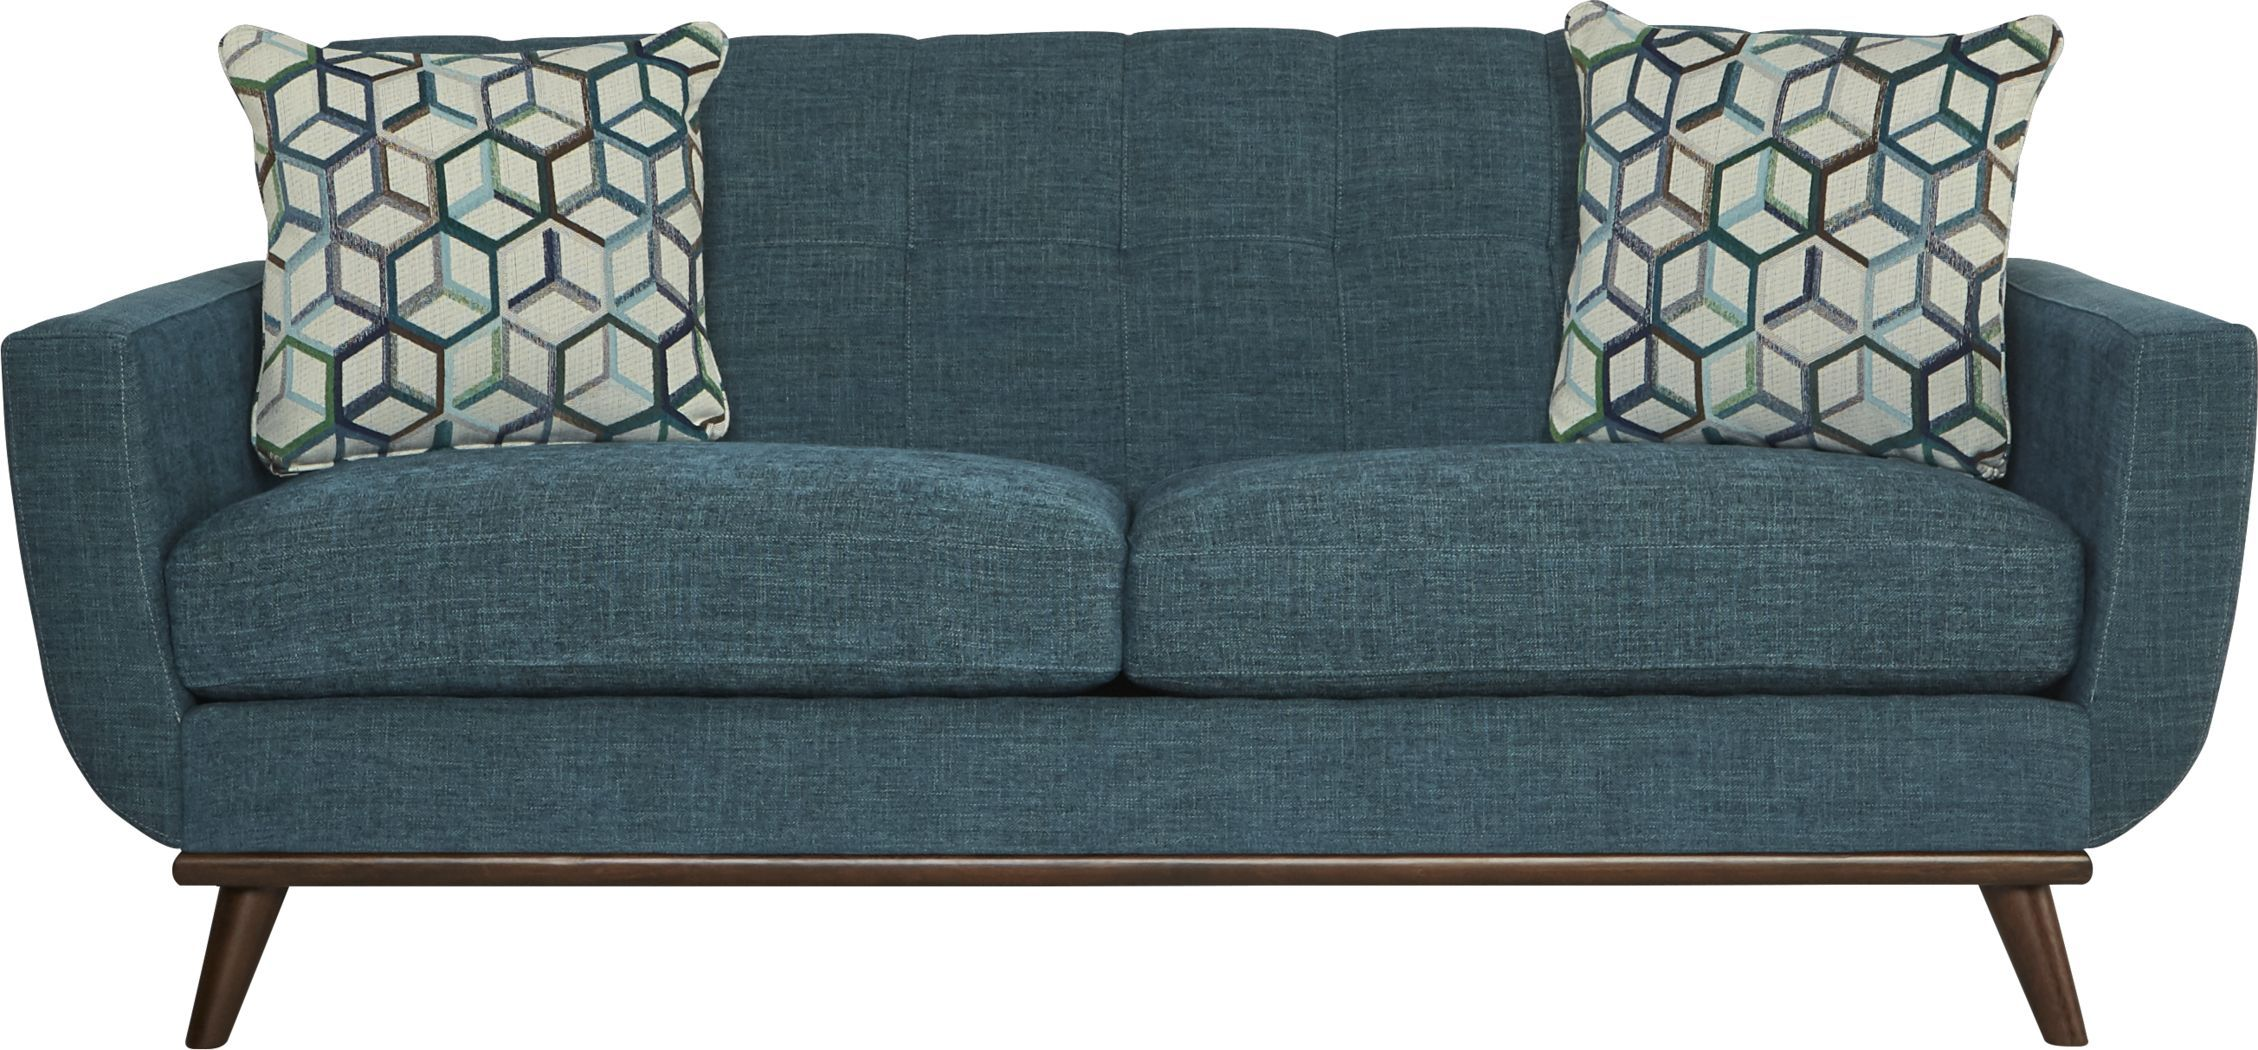 East Side Teal Apartment Sofa Teal Sofa Affordable Furniture